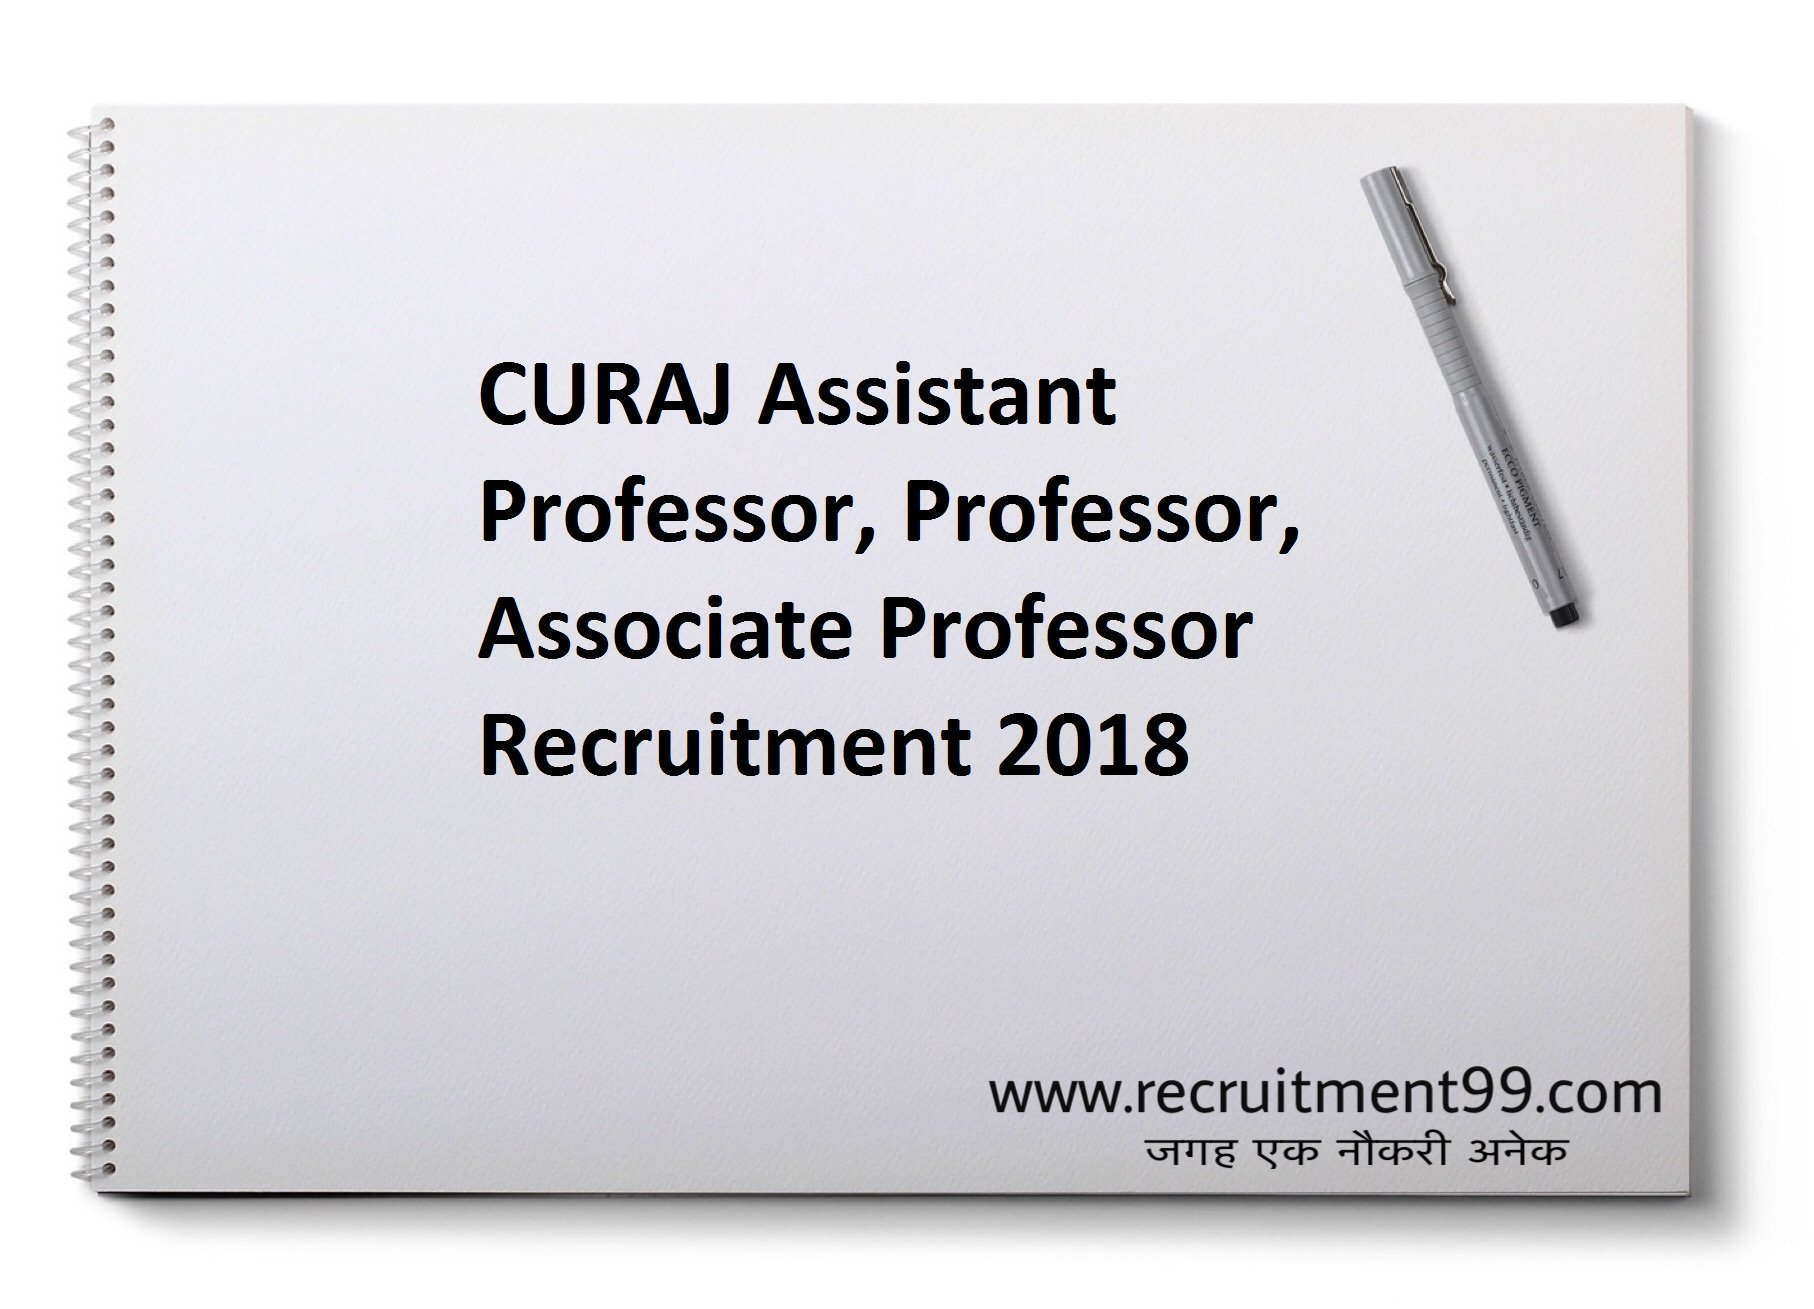 CURAJ Assistant Professor Professor Associate Professor Recruitment Admit Card Result 2018